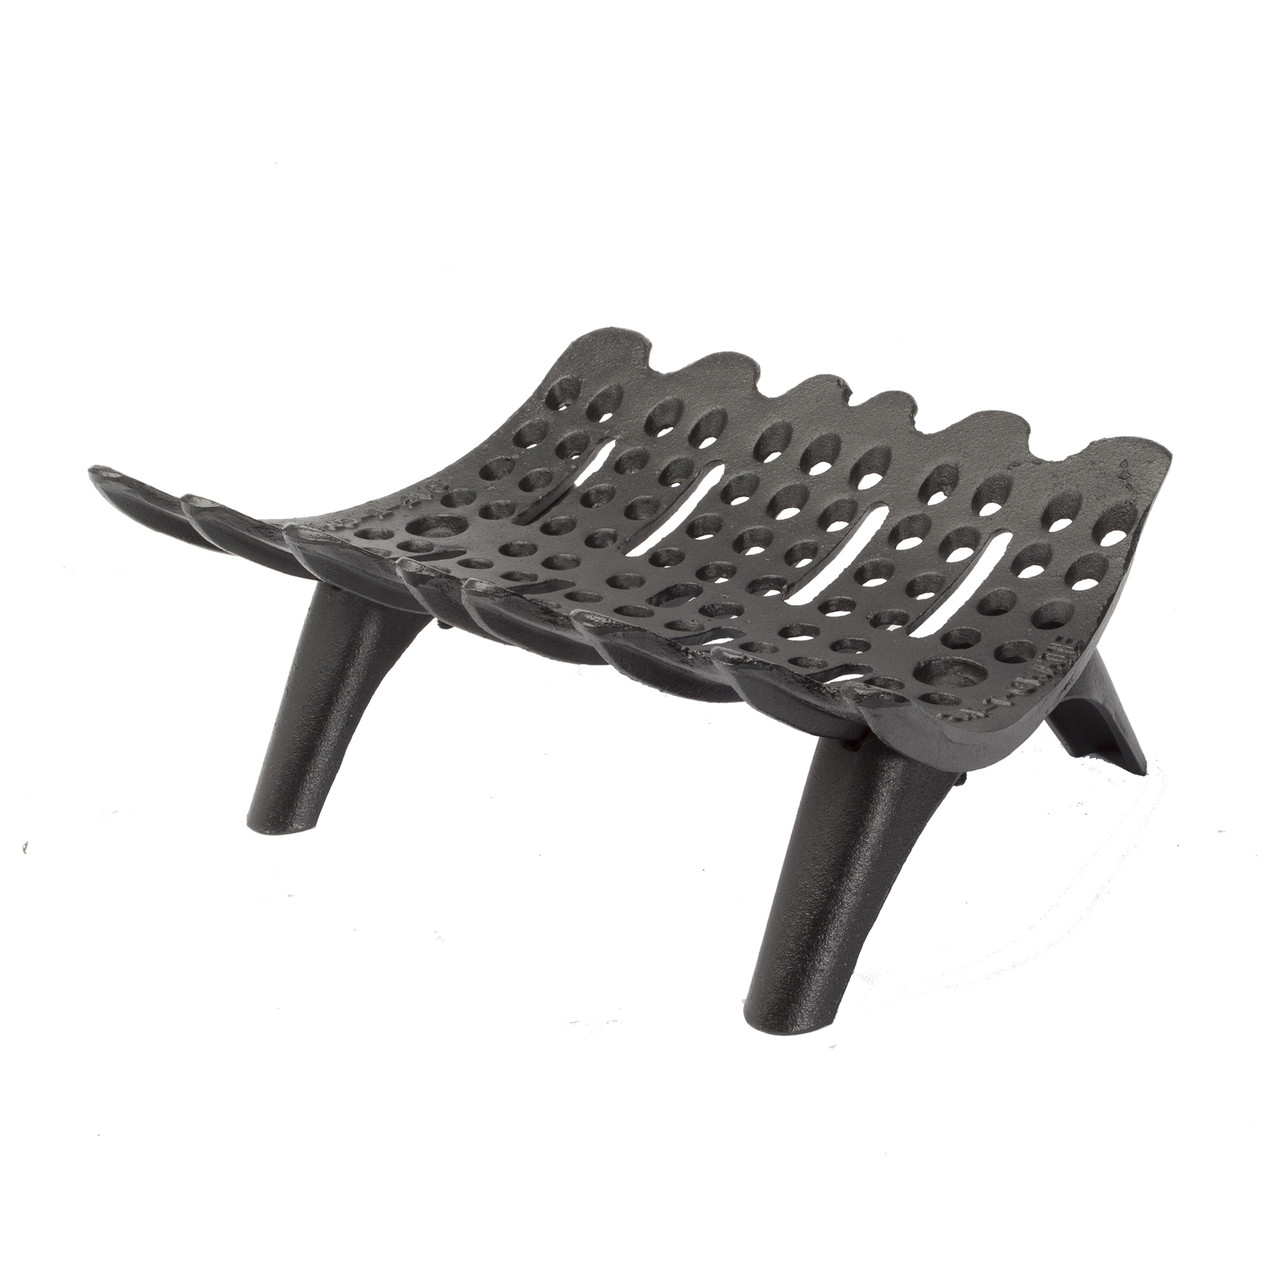 18 Inch Fireplace Grate Saf T Grate 18 In Cast Iron Fireplace Grate